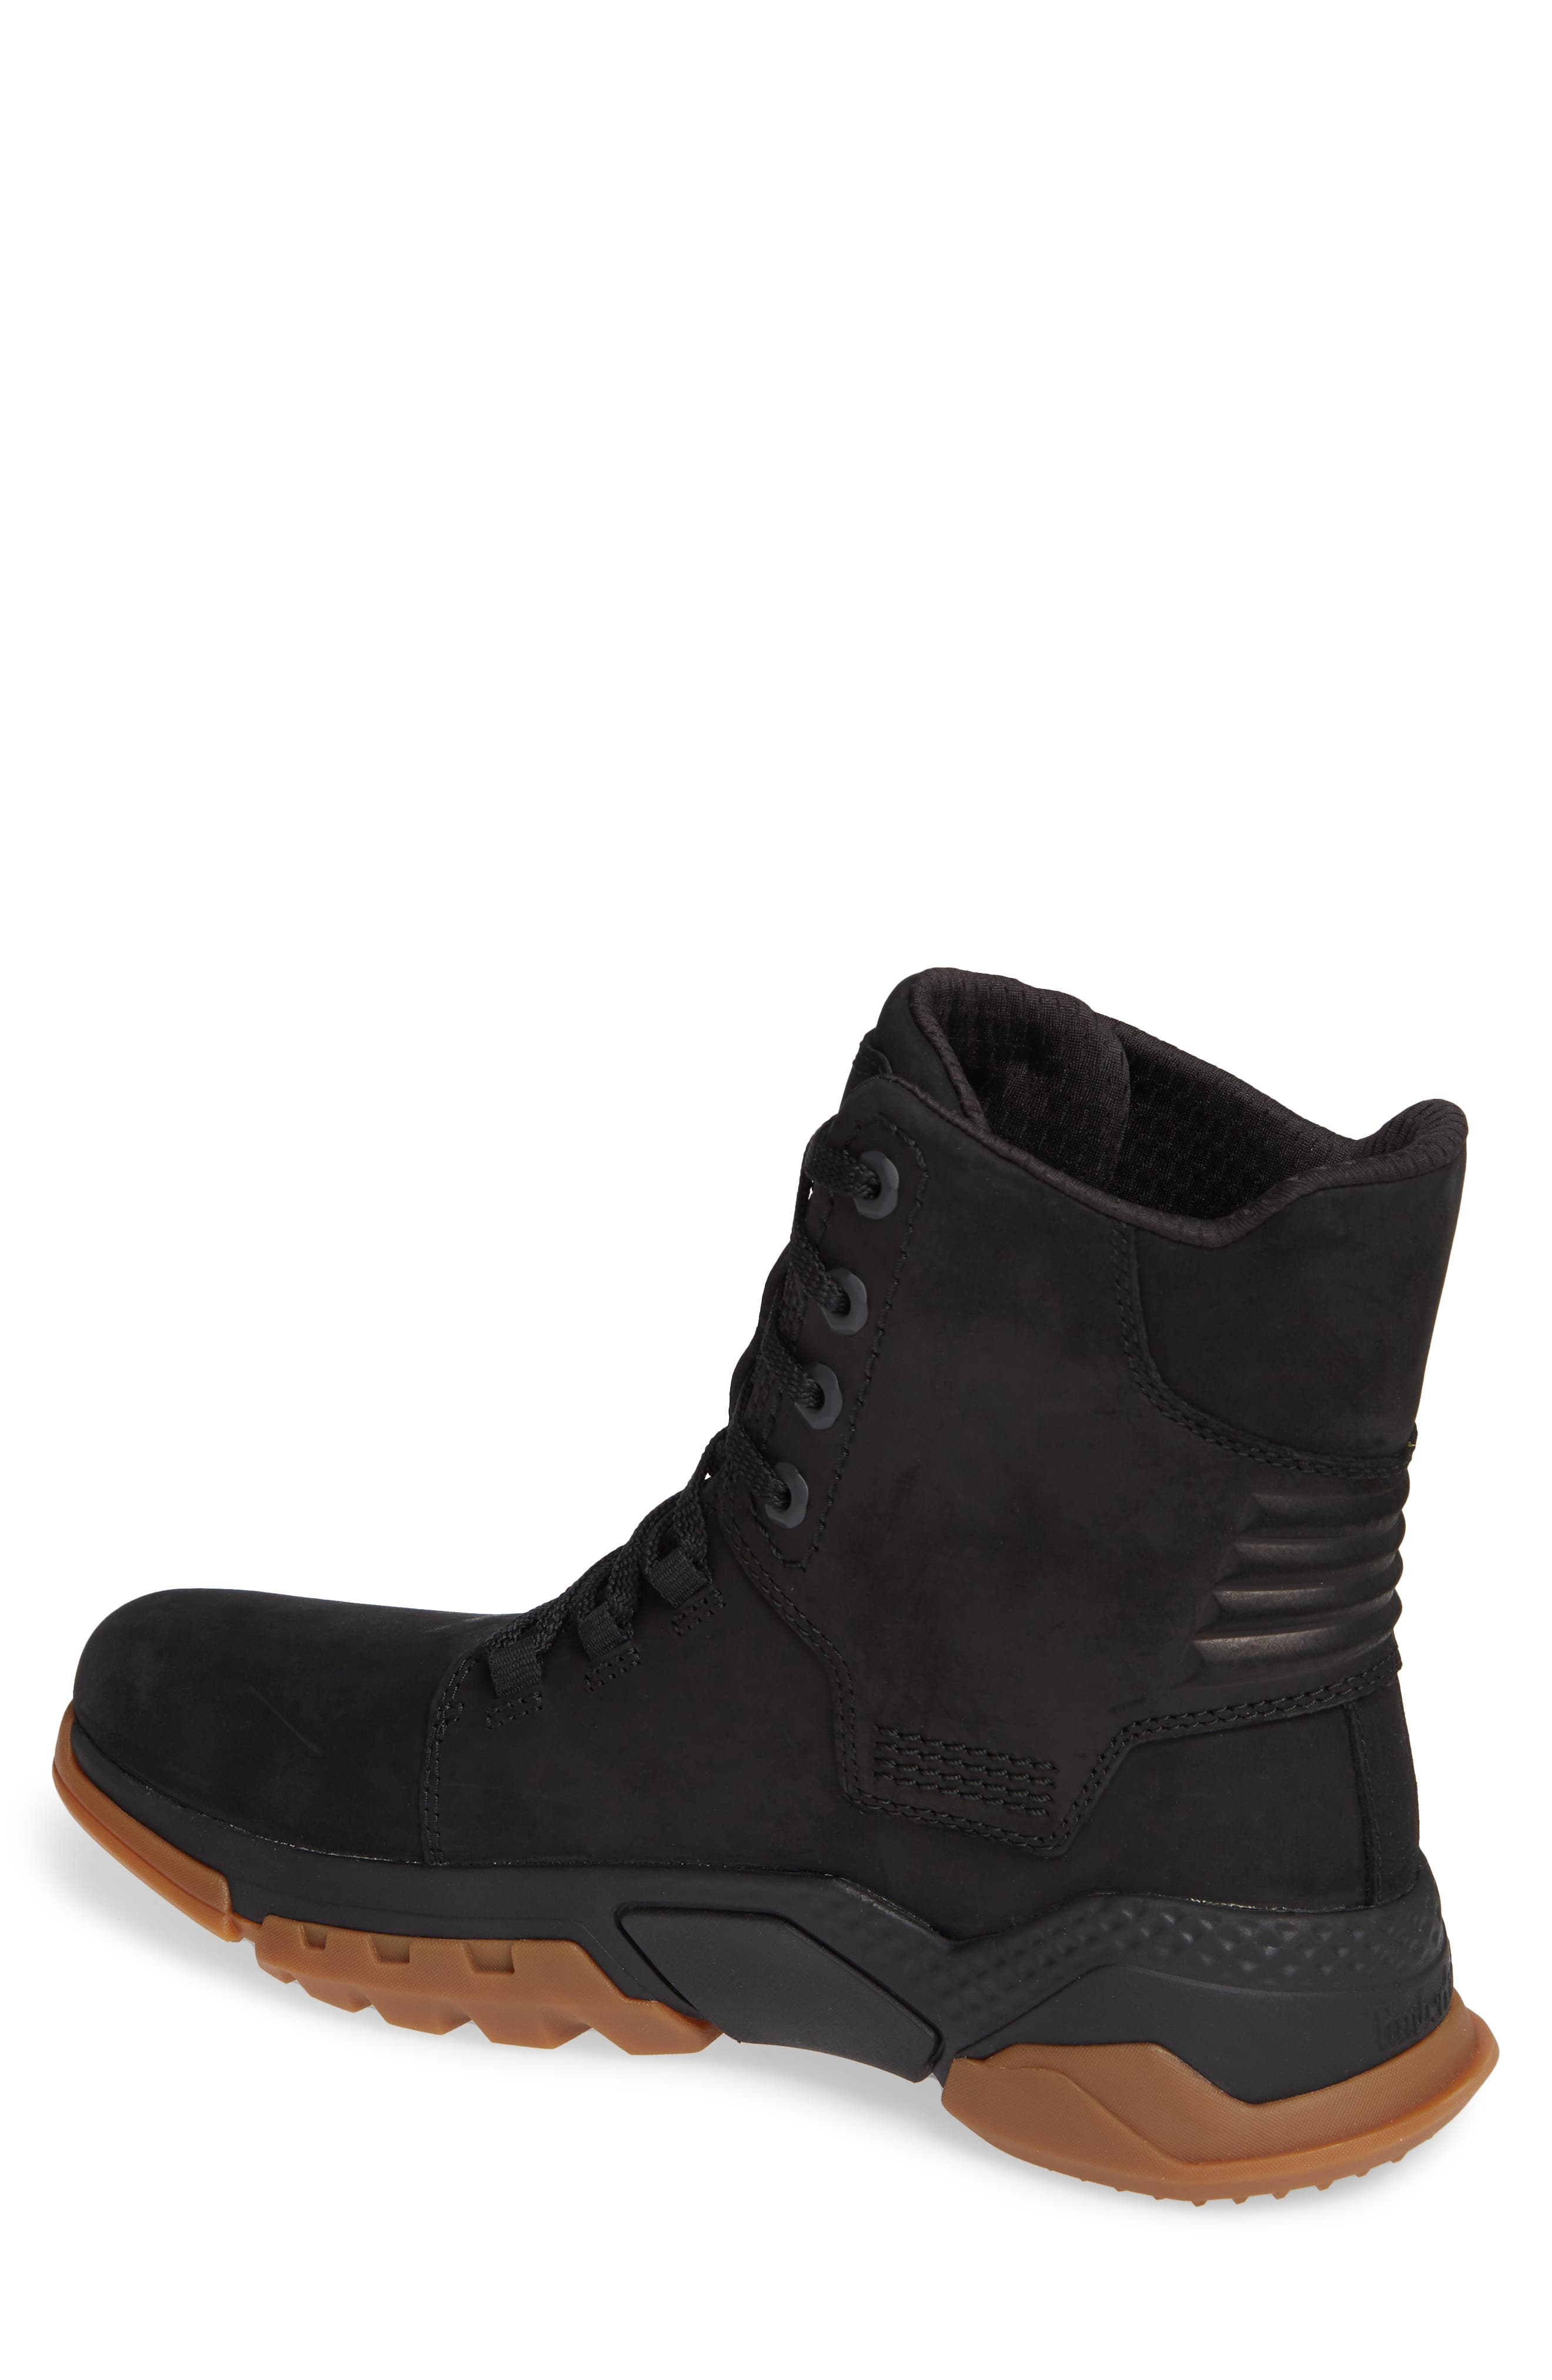 TIMBERLAND, City Force Reveal Plain Toe Boot, Alternate thumbnail 2, color, BLACK LEATHER/ NEOPRENE